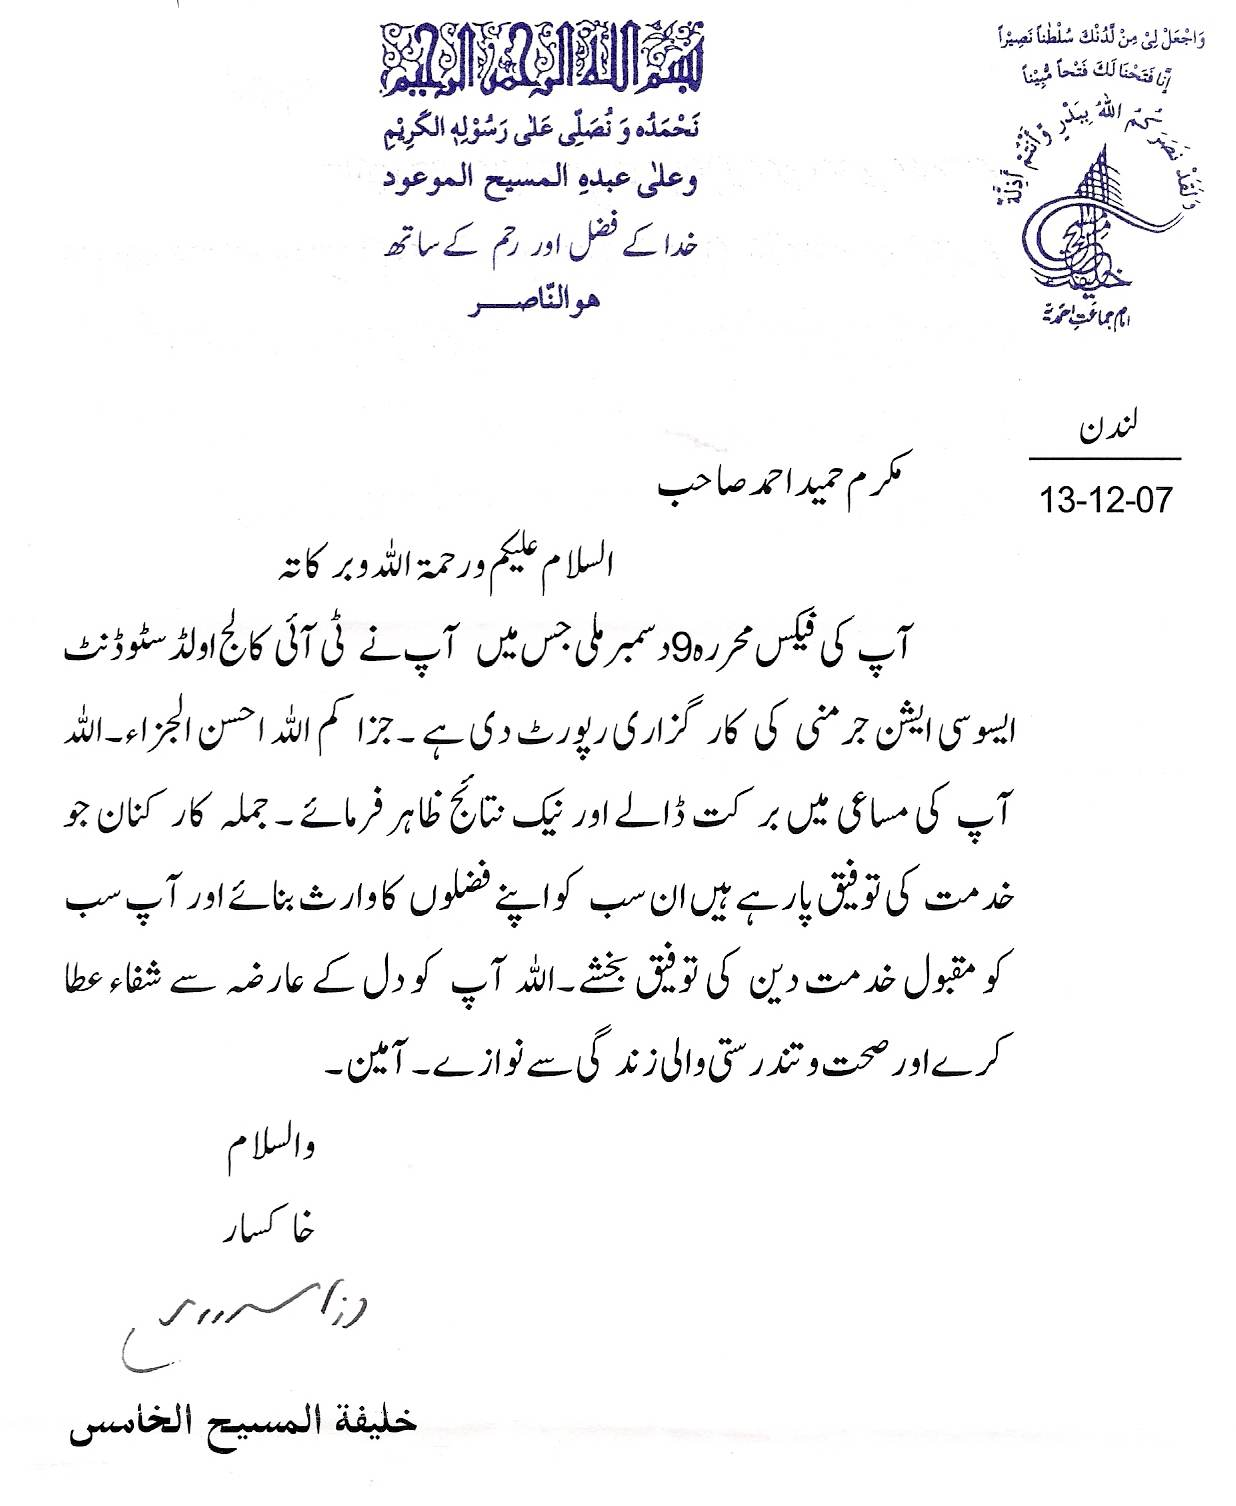 How to write a leave letter in urdu cover letter templates how to write a resignation letter in urdu cover templates stopboris Gallery